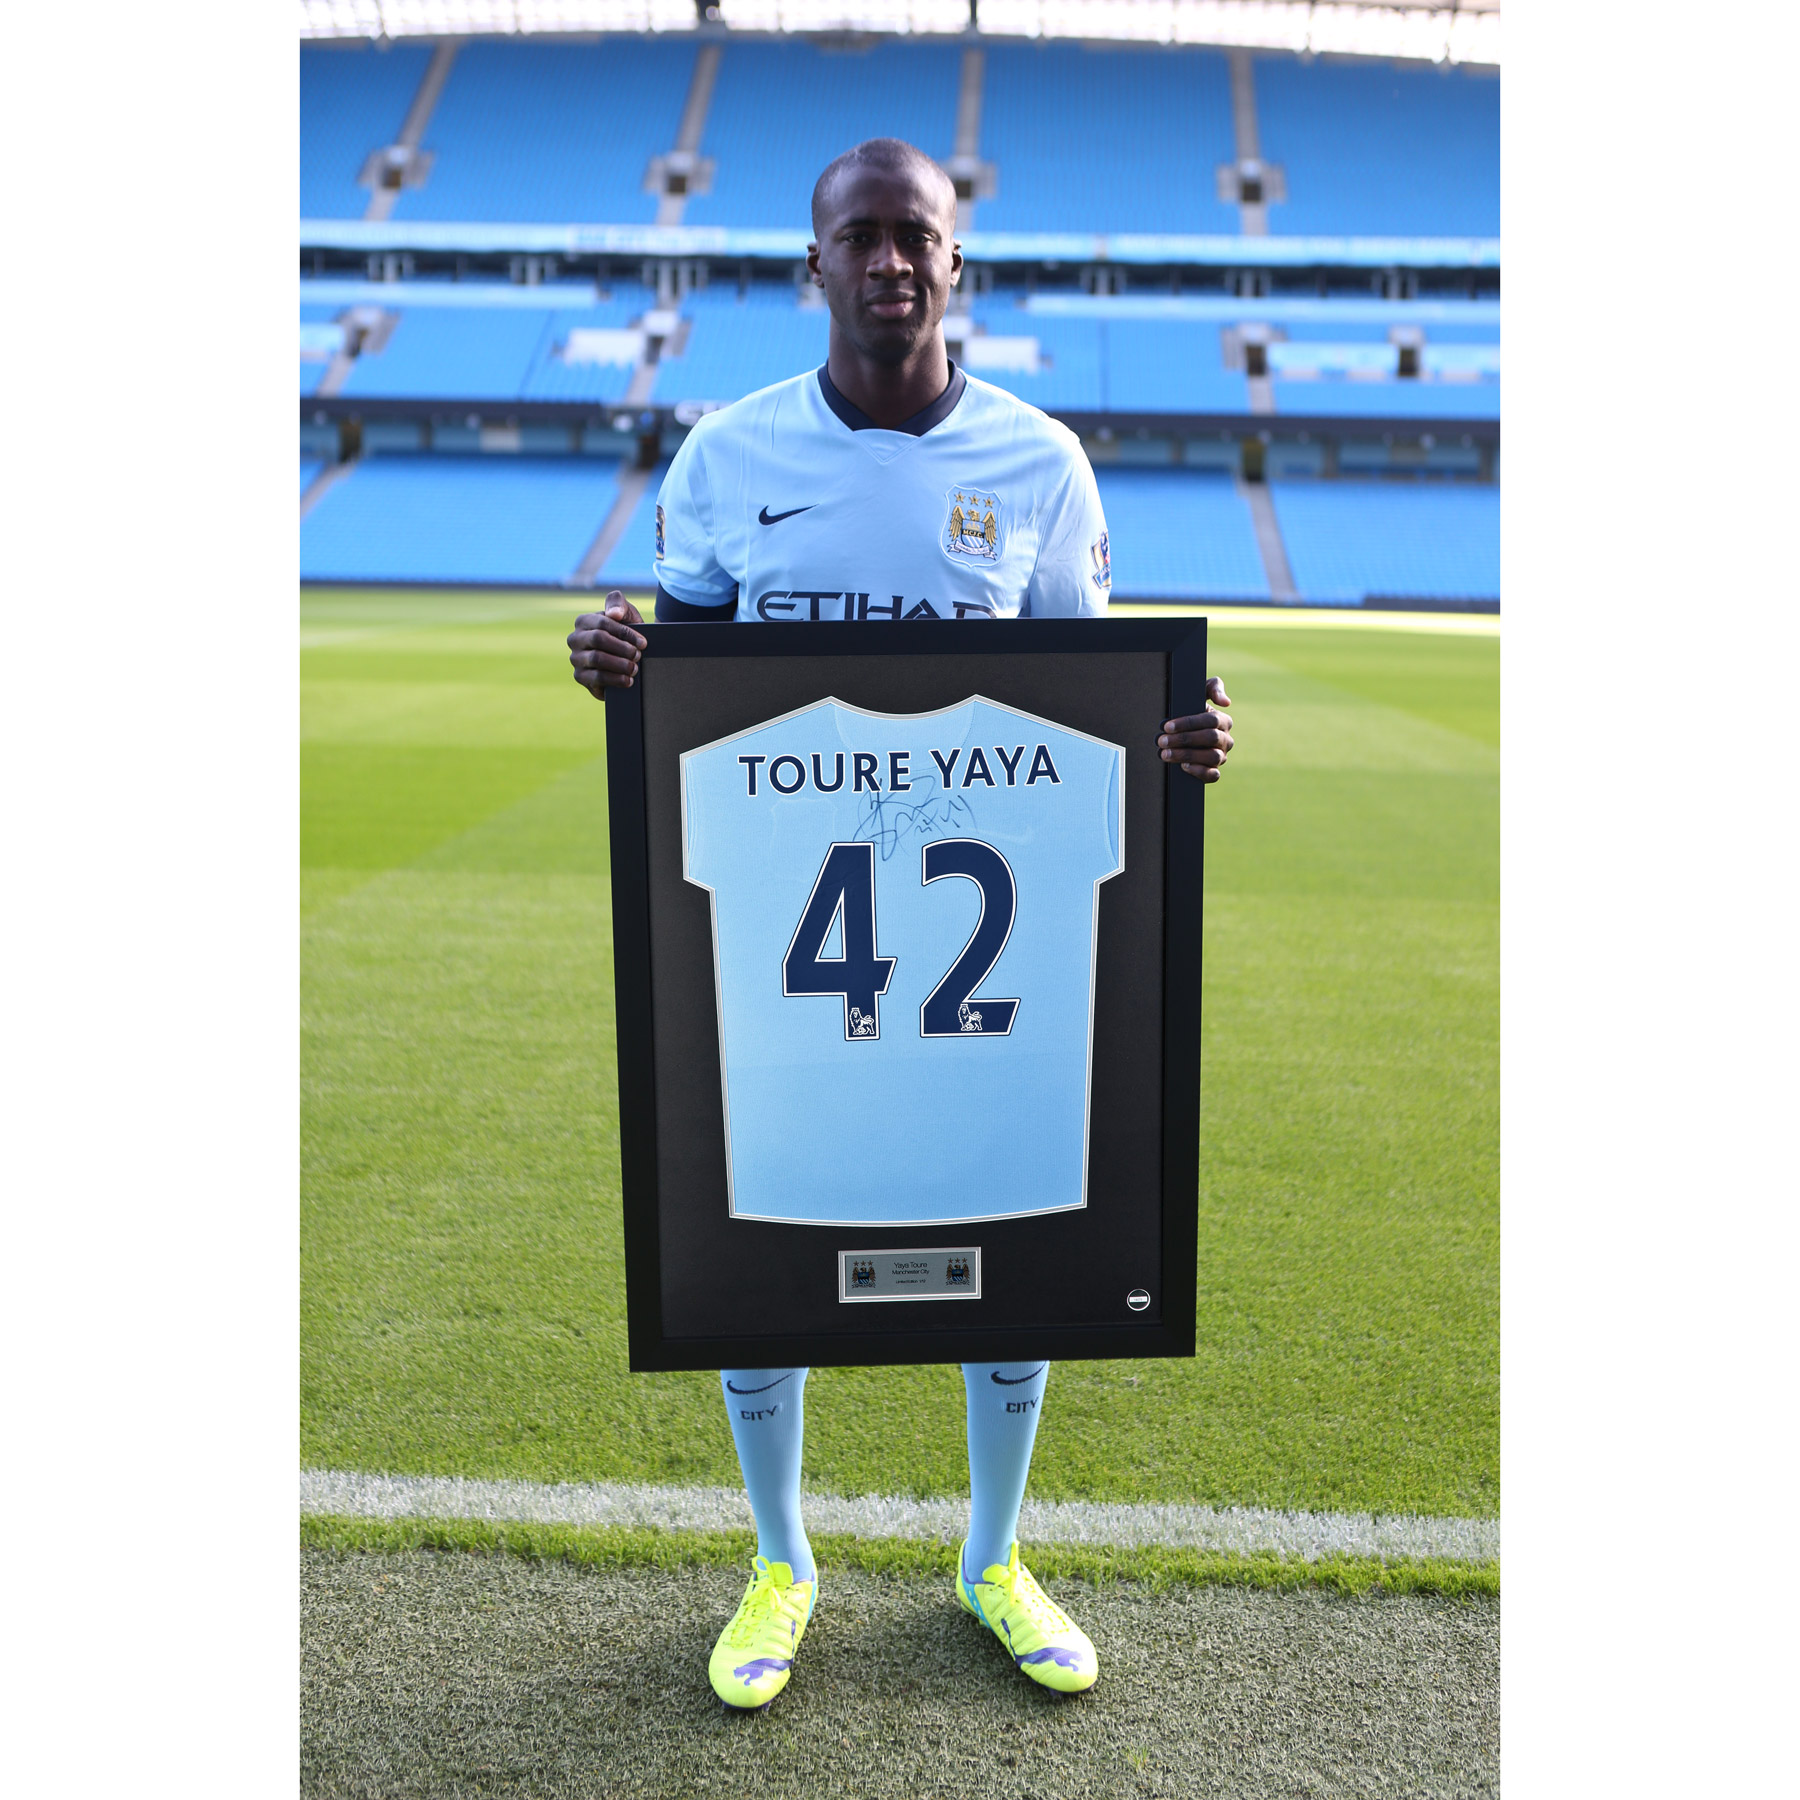 Manchester City Framed 2014/15 Home Shirt Signed - Yaya Toure